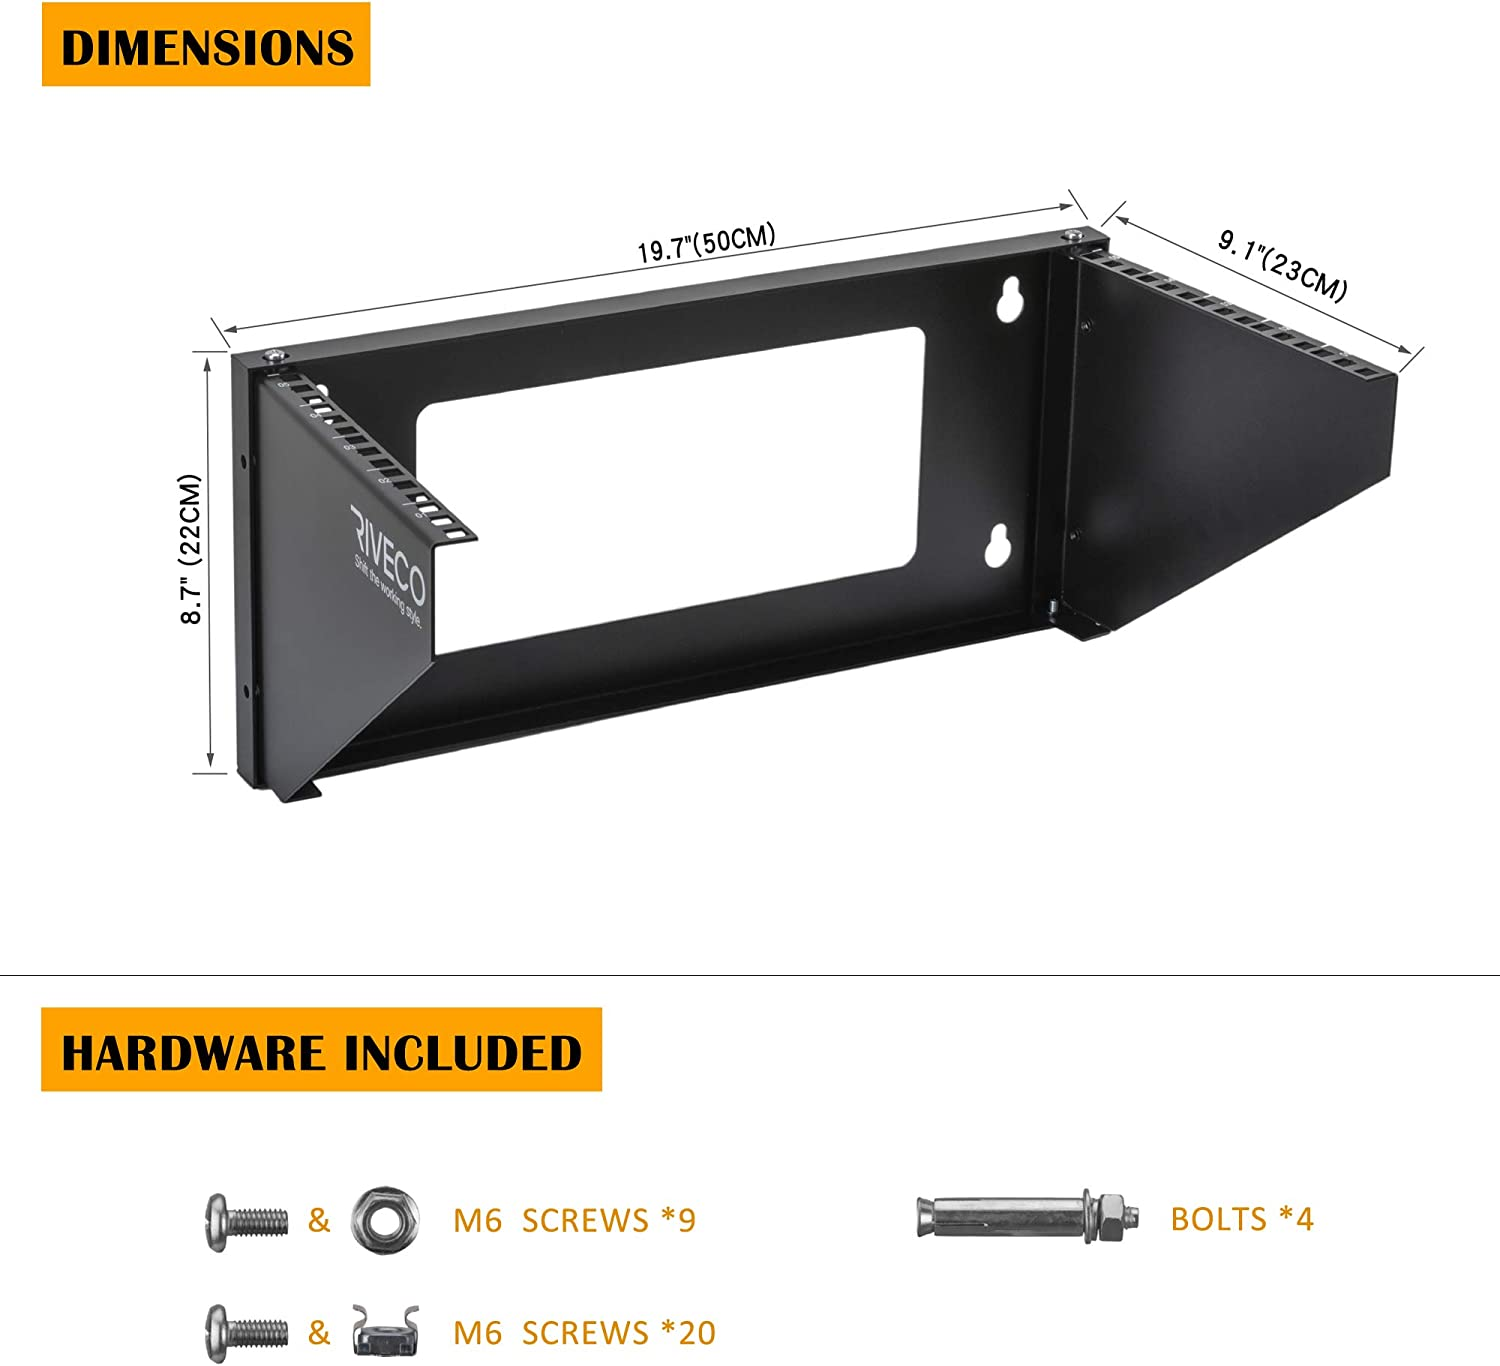 RIVECO 5U Wall Mount Patch Panel Vertical Bracket Firm Constructed Easy Assembly Narrow Space Mounting Rack for Networking Equipment Black